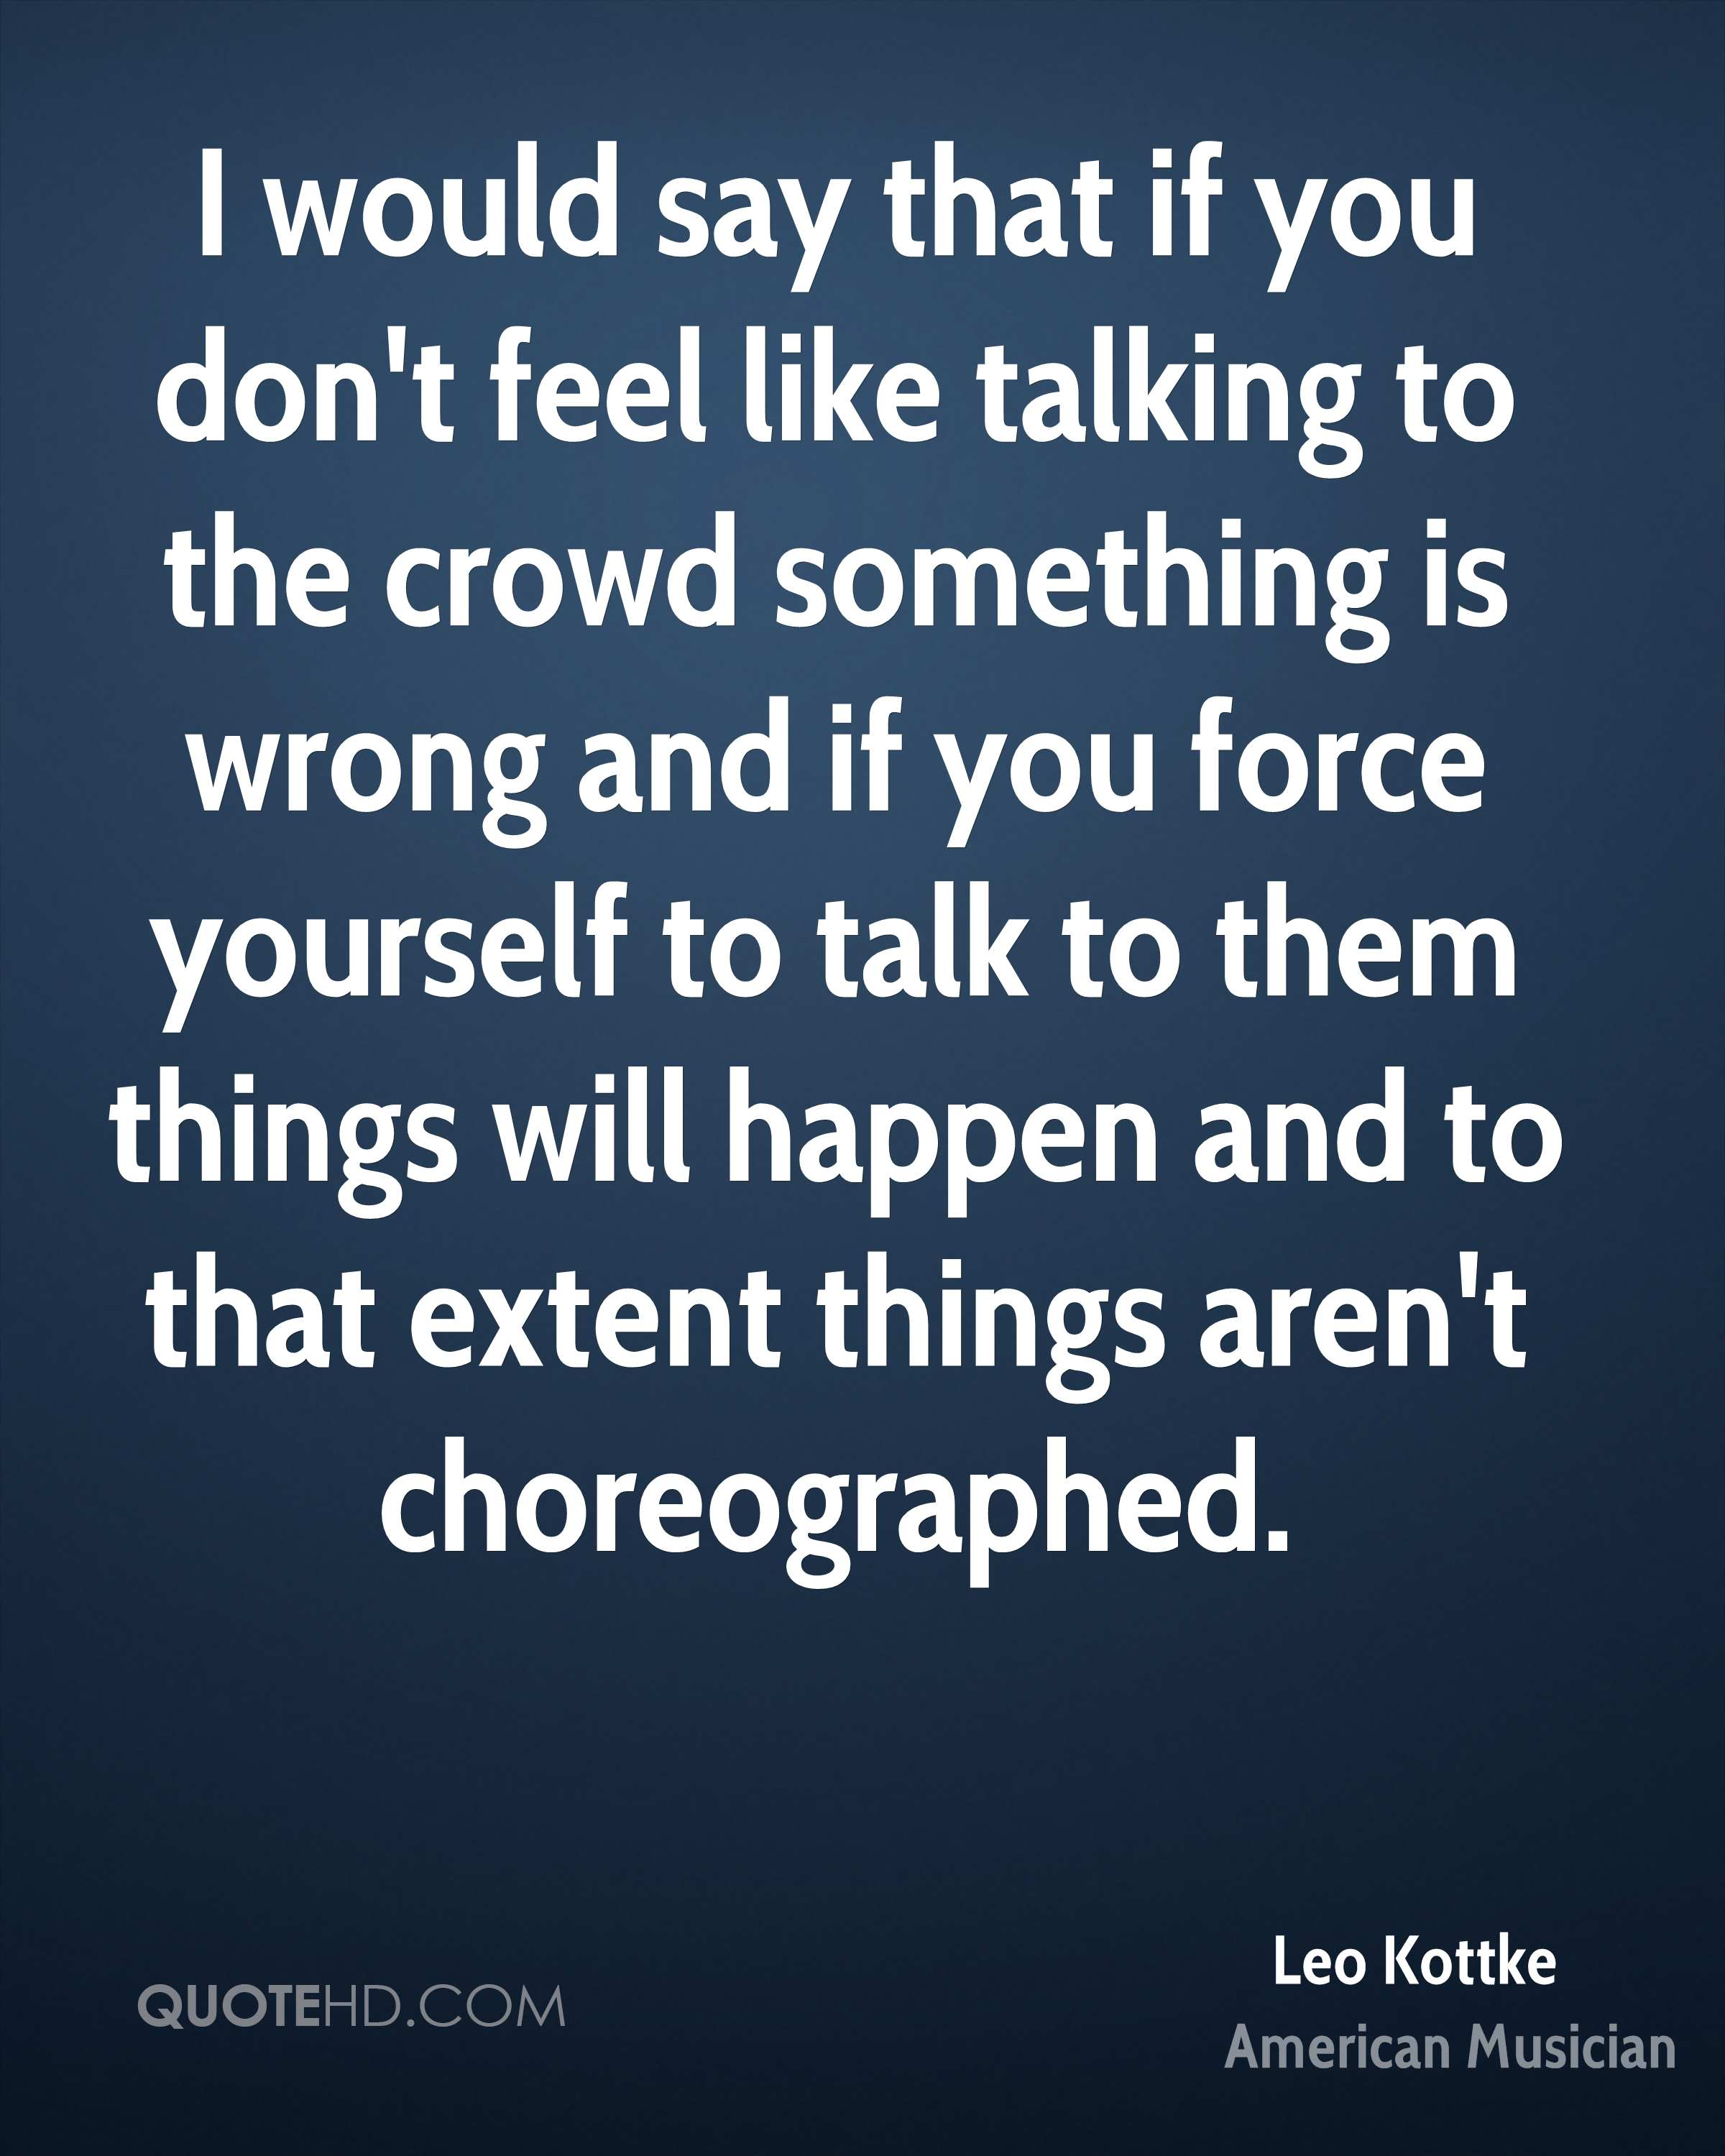 I would say that if you don't feel like talking to the crowd something is wrong and if you force yourself to talk to them things will happen and to that extent things aren't choreographed.